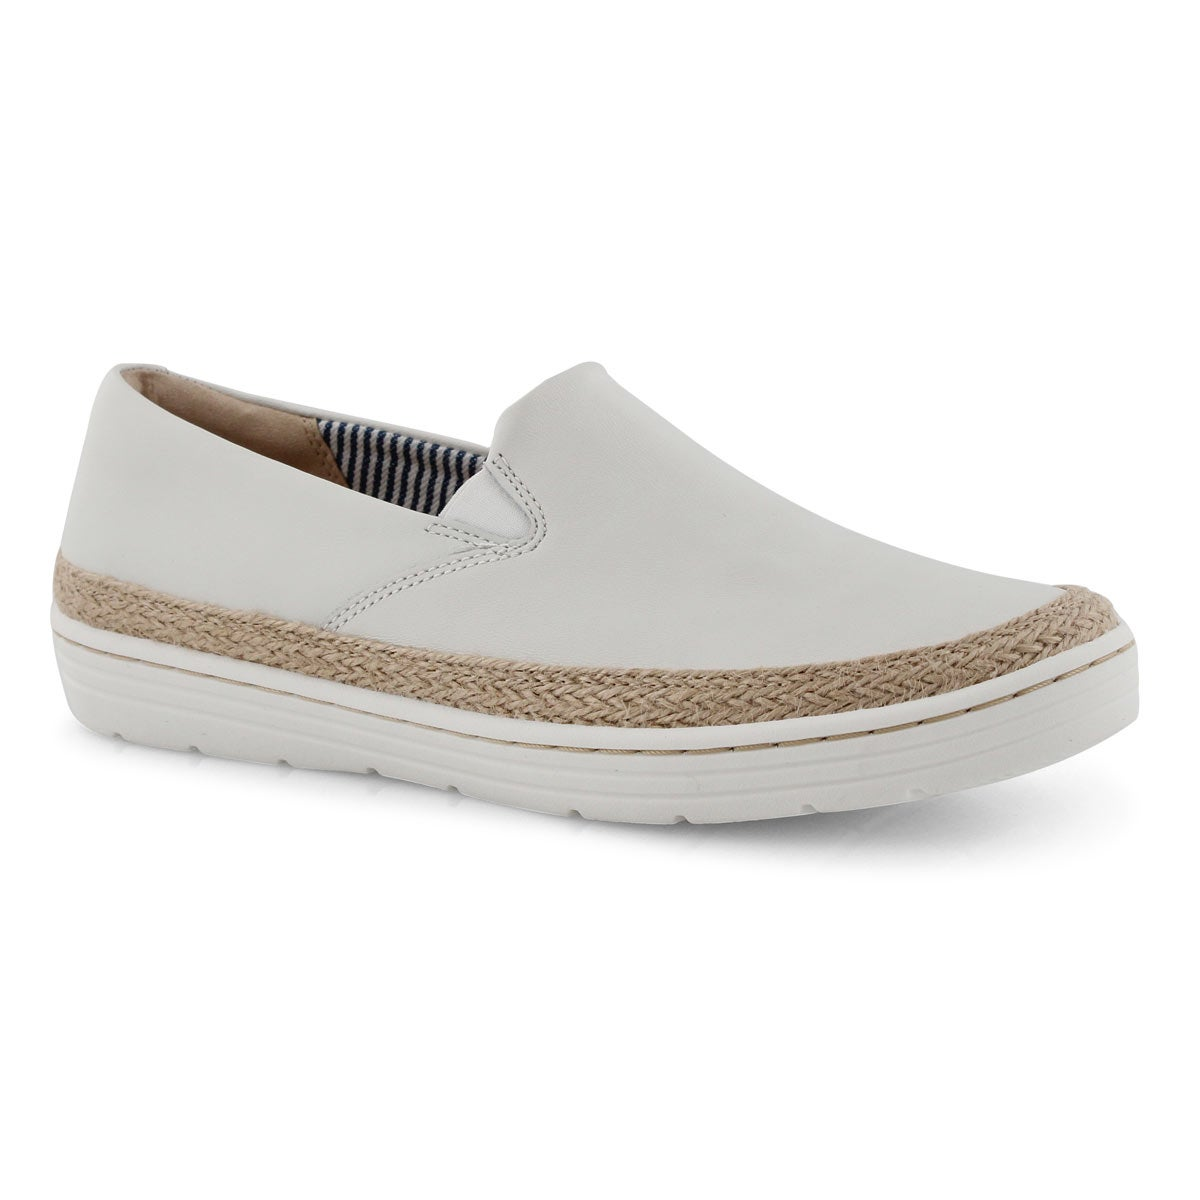 Lds Marie Pearl white lthr casual shoe